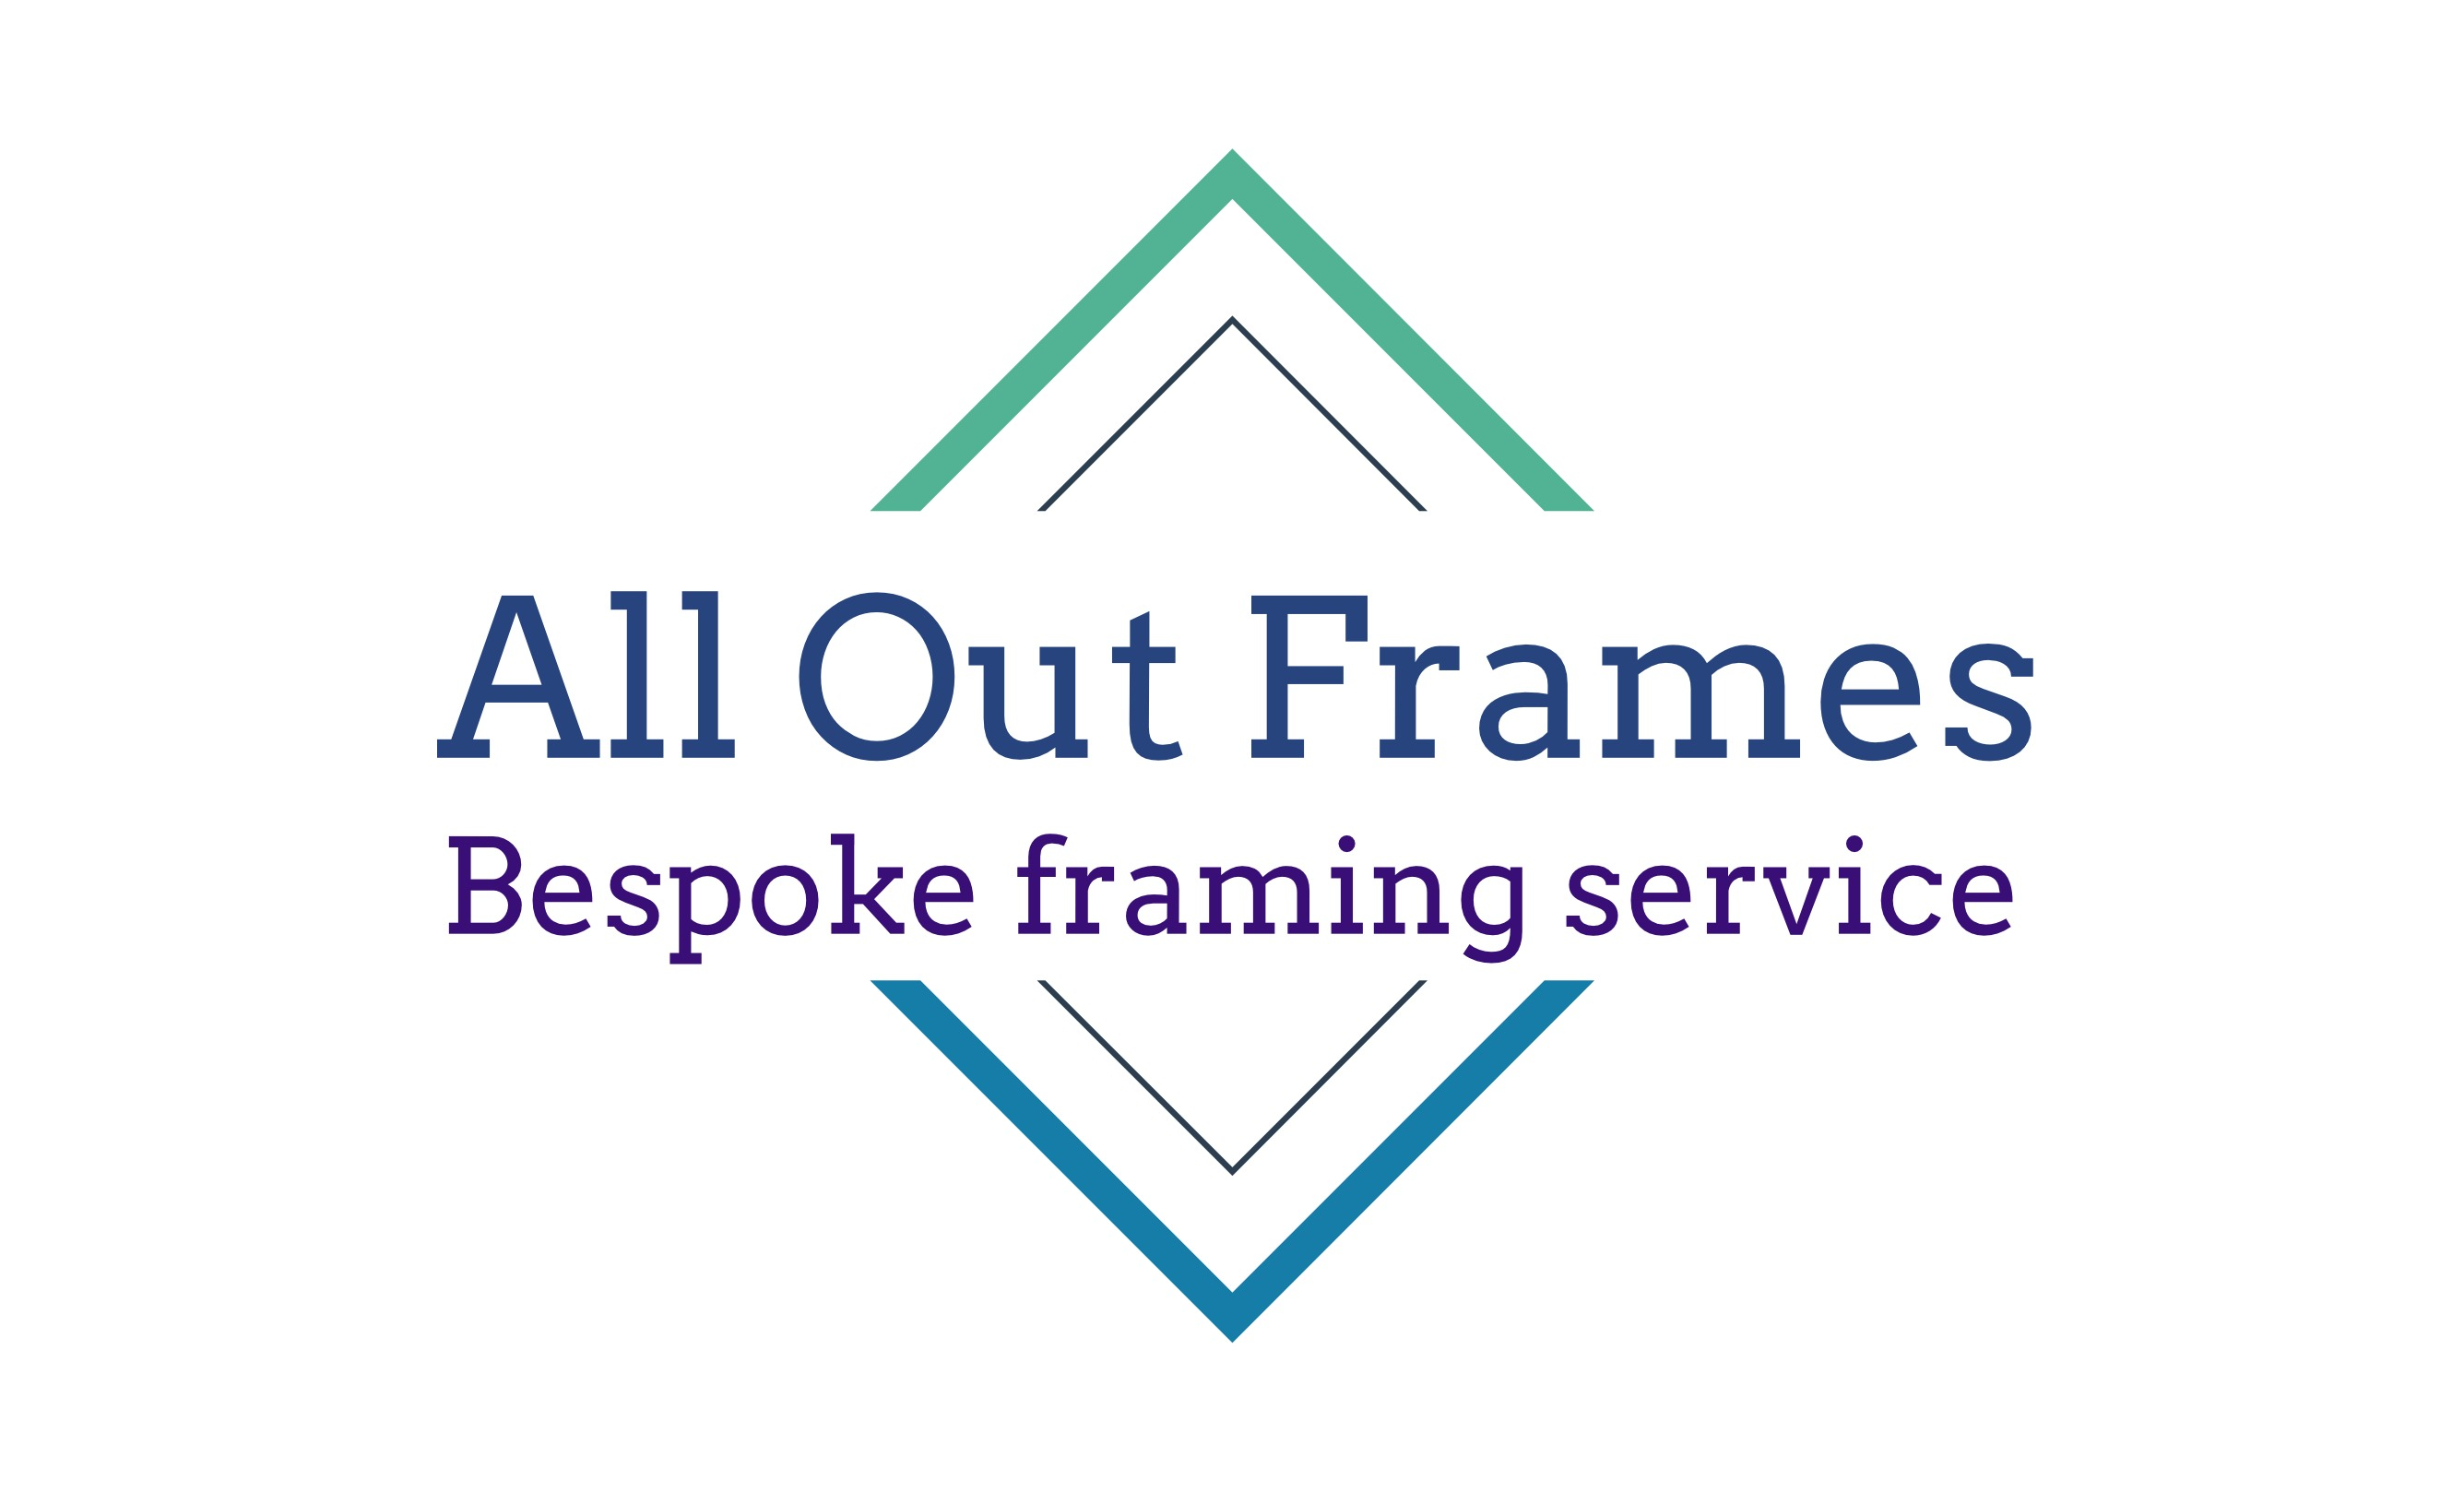 All Out Frames